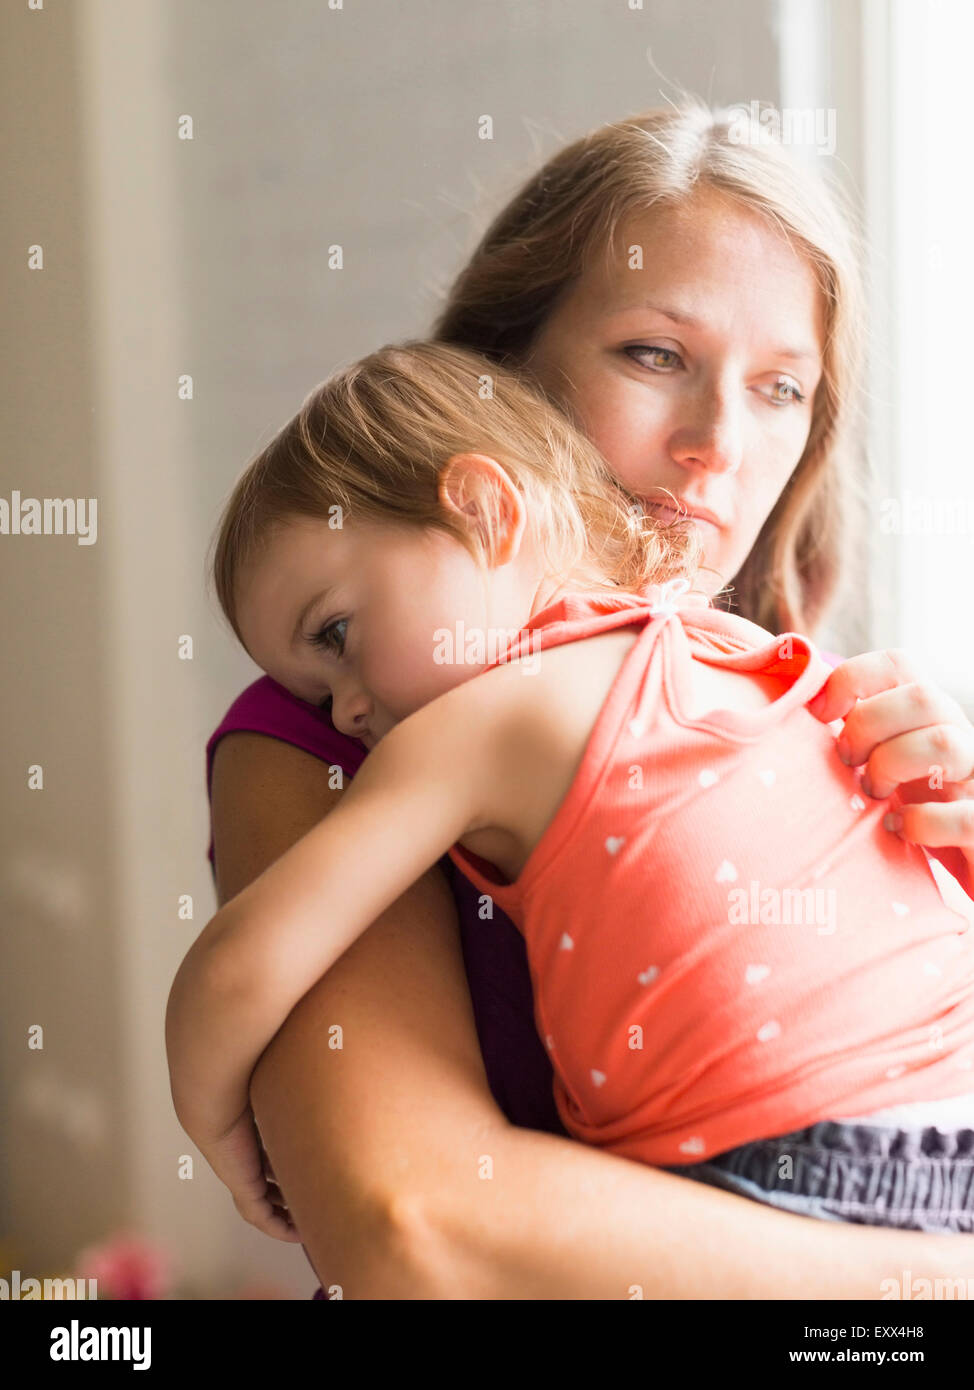 Mather carrying daughter (2-3) - Stock Image